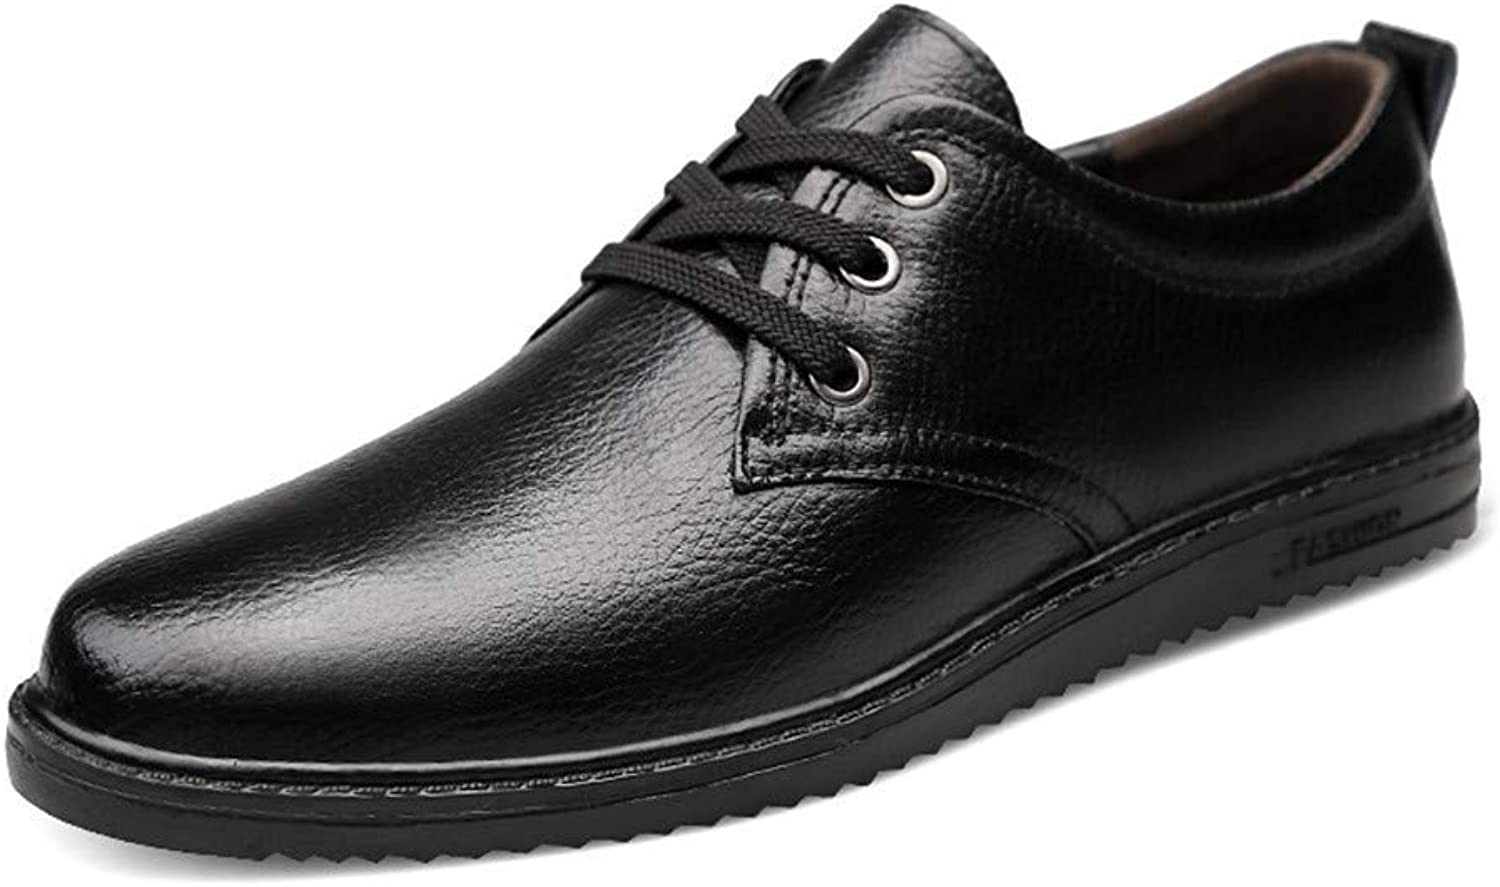 Hhgold 2018 Men Business Oxford shoes, Casual Classic Genuine Leather Lace Low Top Flat Formal shoes (color  Black, Size  47 EU) (color   Black, Size   42 EU)